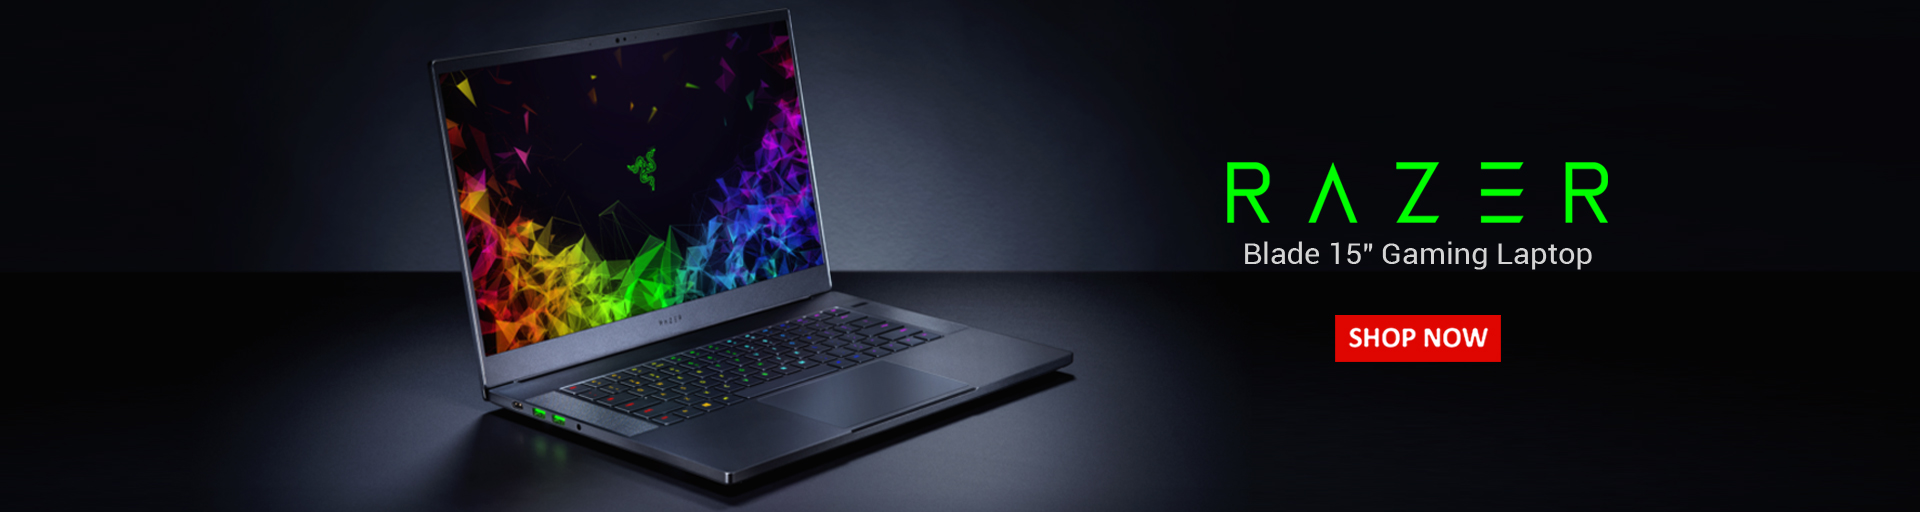 razer-blade-15-gaming-laptop